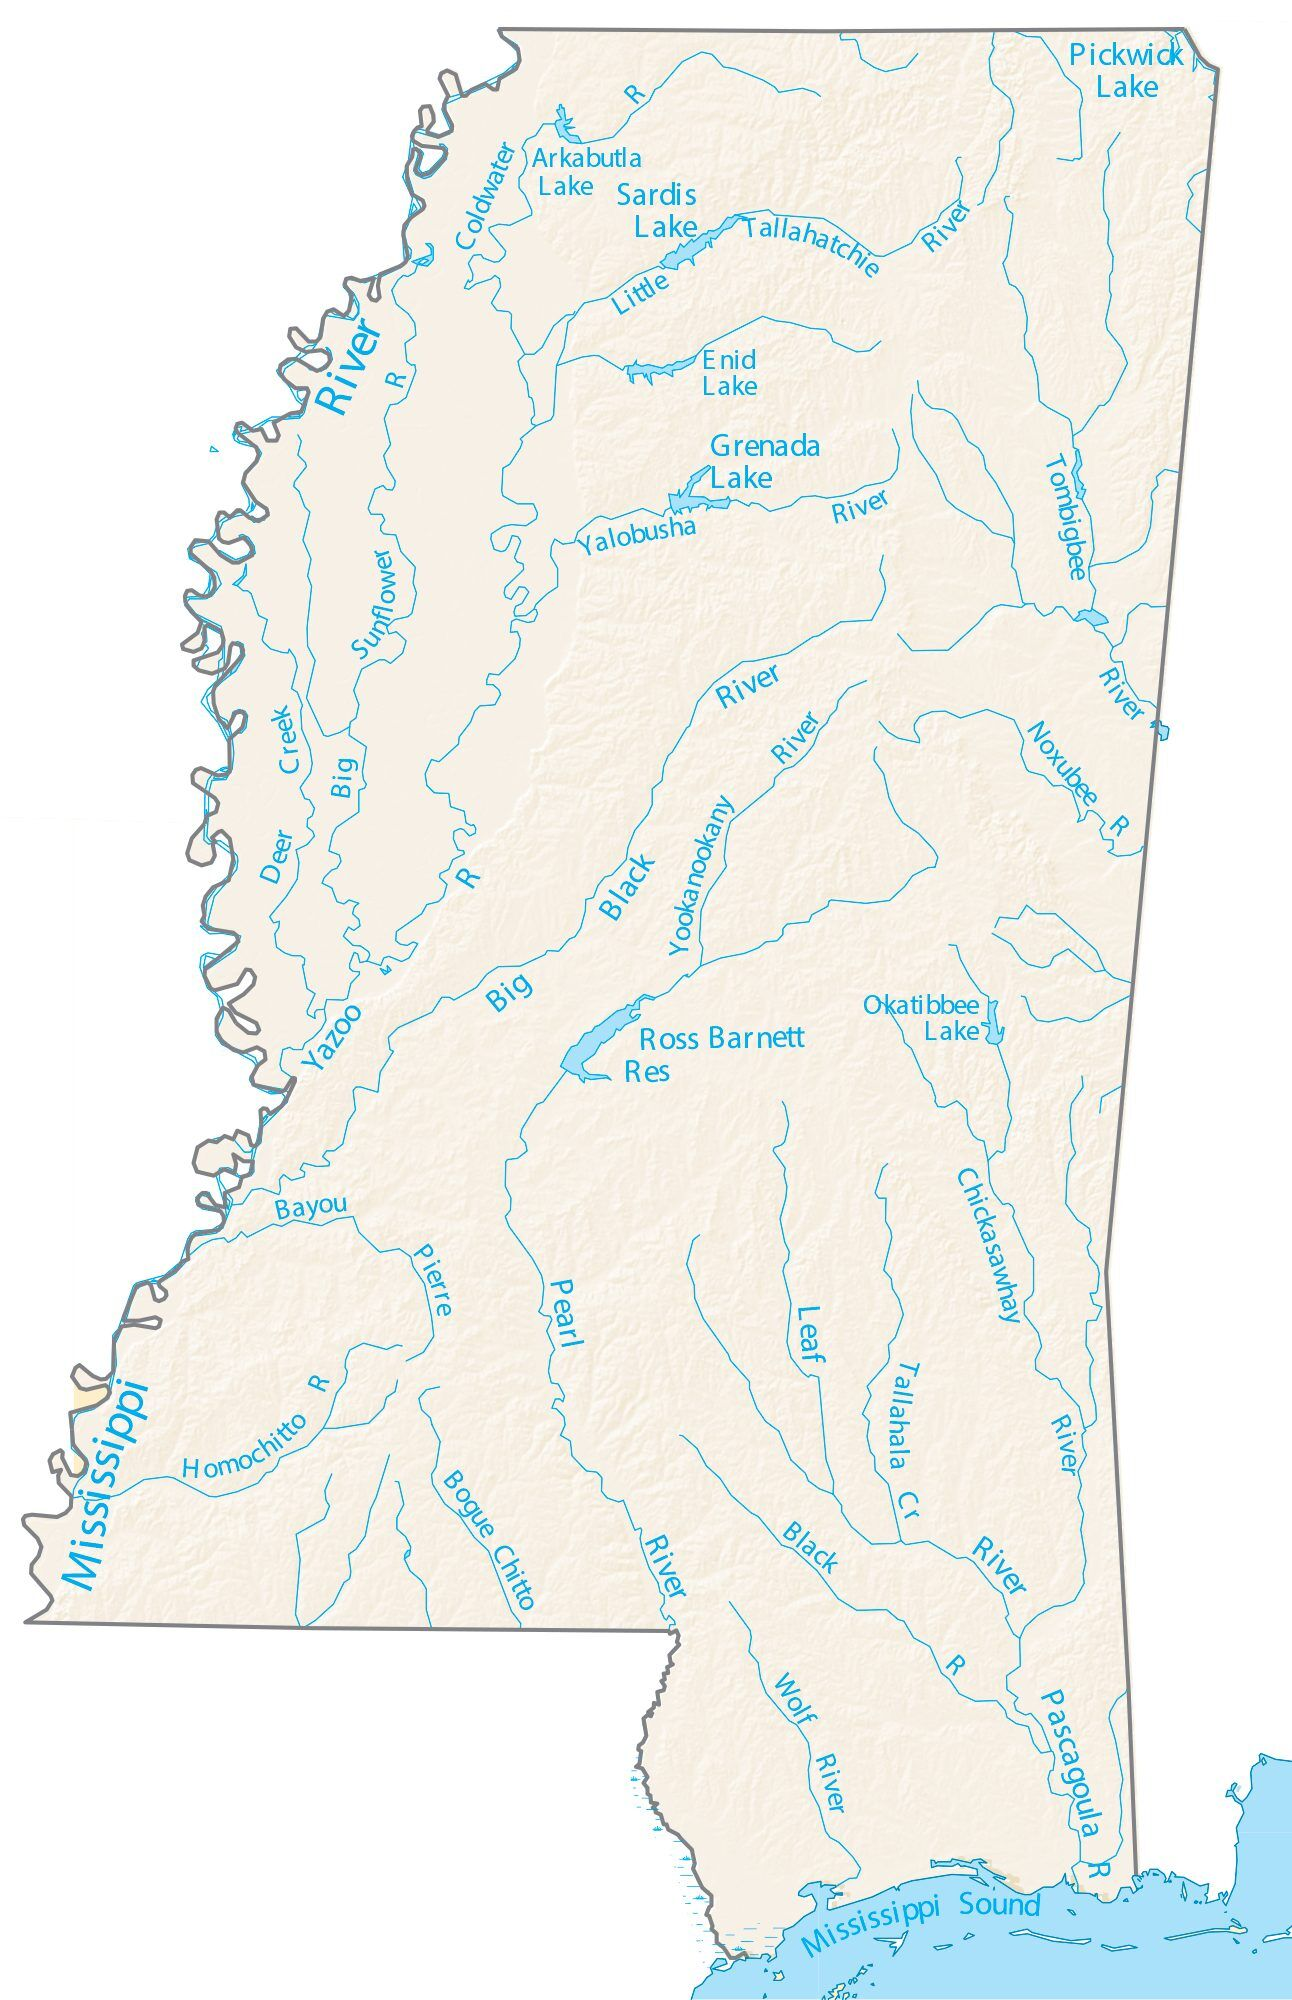 wolf river mississippi map Mississippi Lakes And Rivers Map Gis Geography wolf river mississippi map